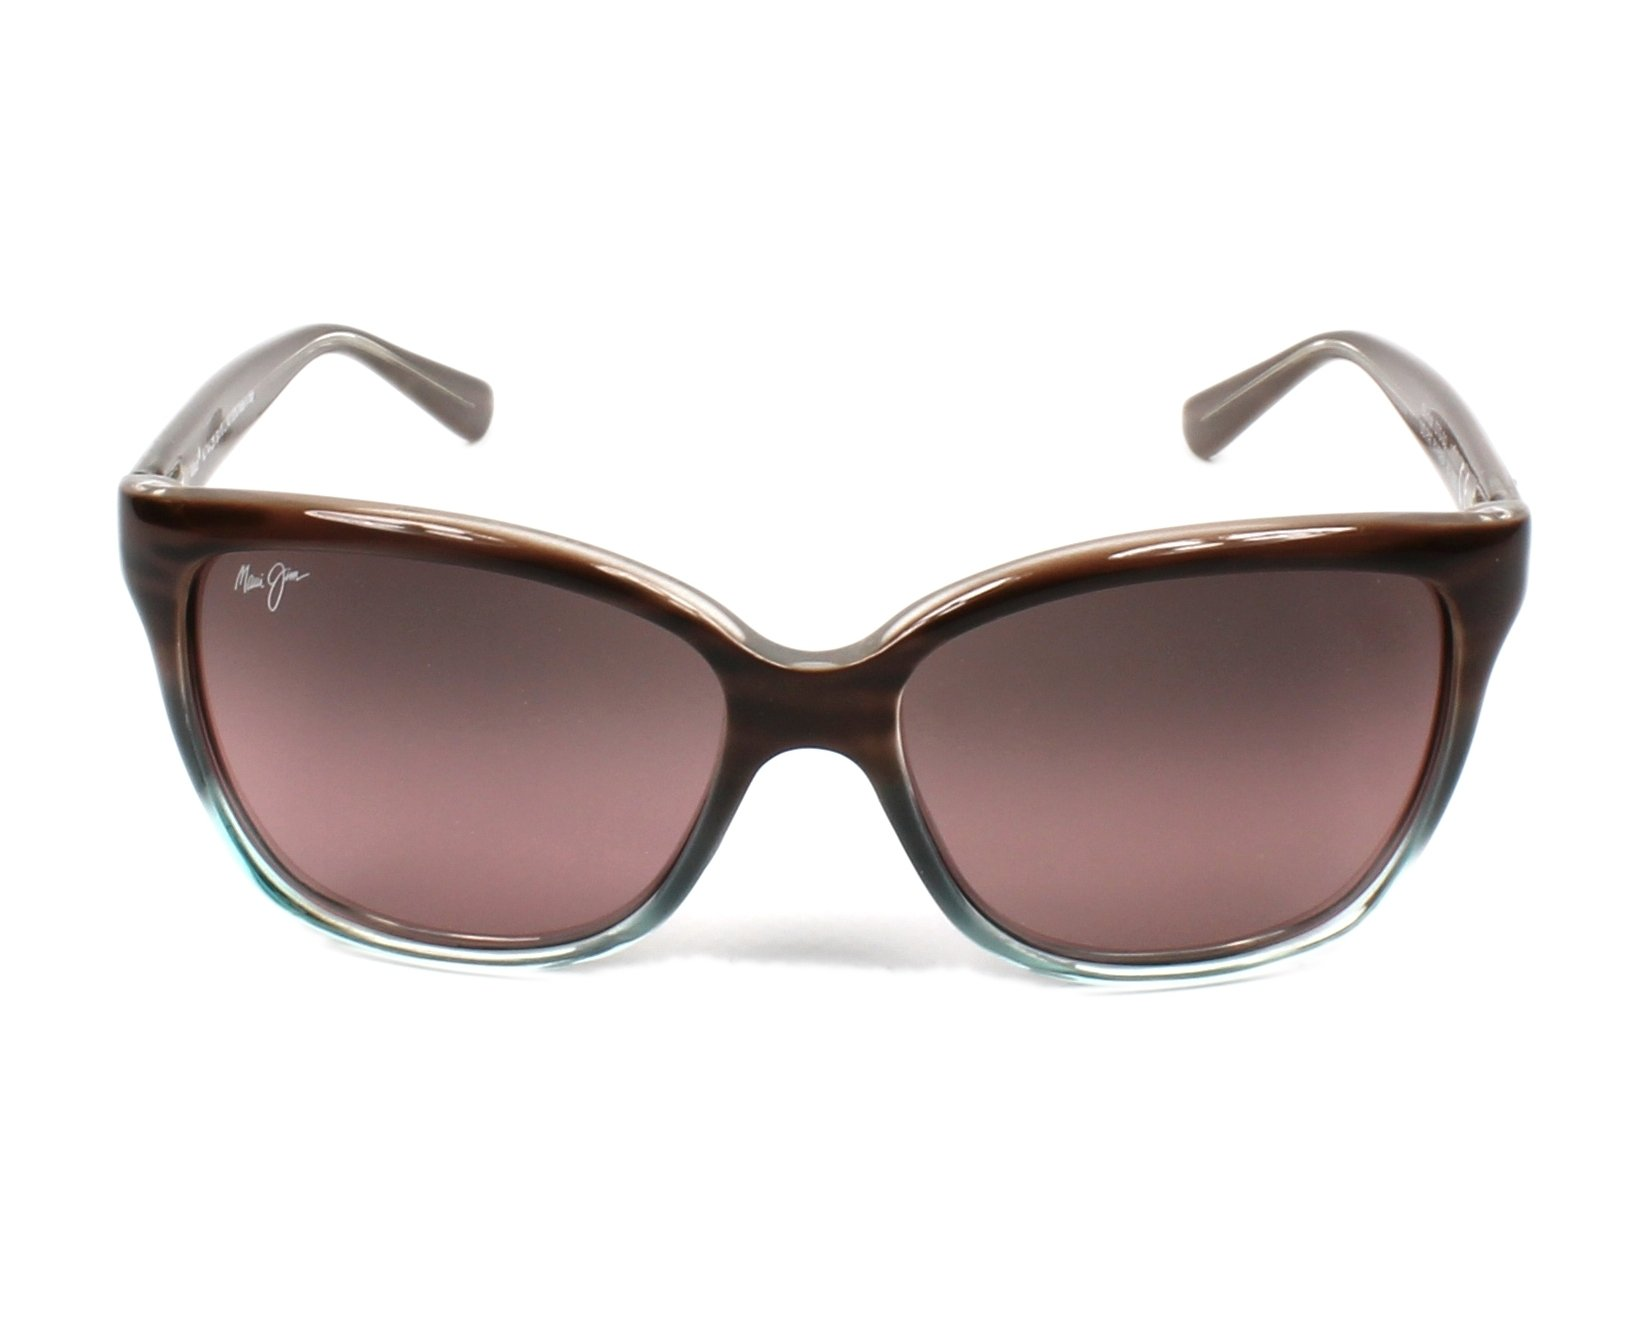 133c4120e95f8 Sunglasses Maui Jim RS-744 22B - Brown Turquoise front view